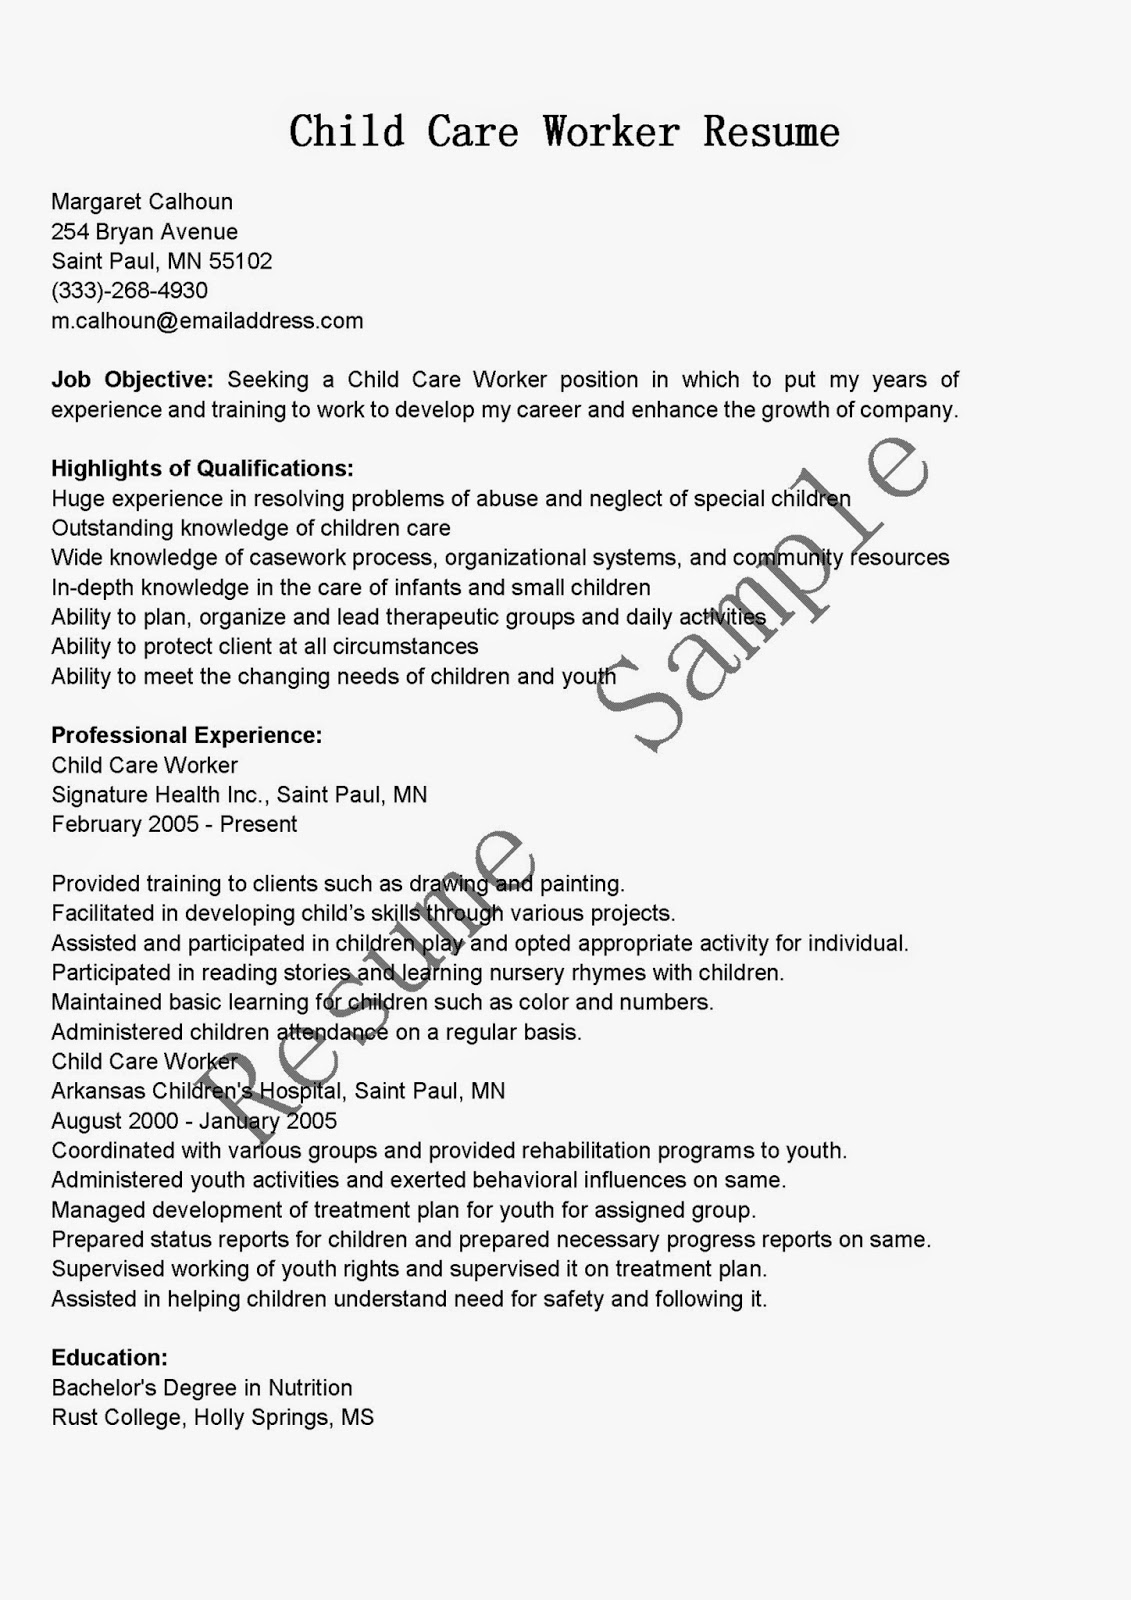 resume samples child care worker resume sample